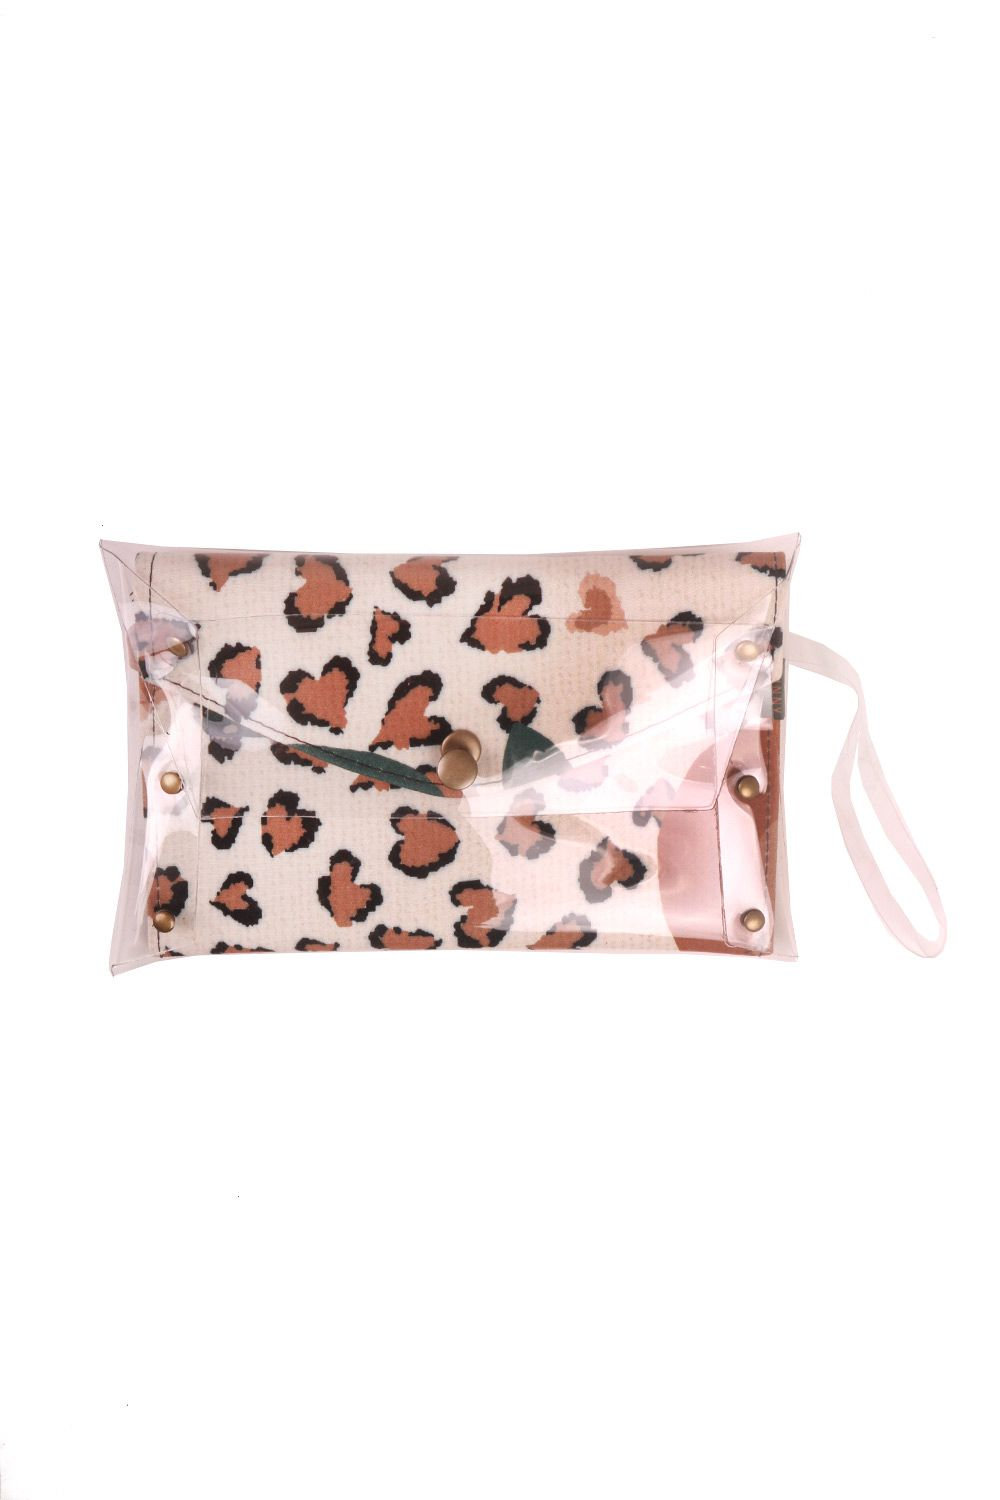 Kit Cinto Slim e Carteira Clutch Estampada Terracota